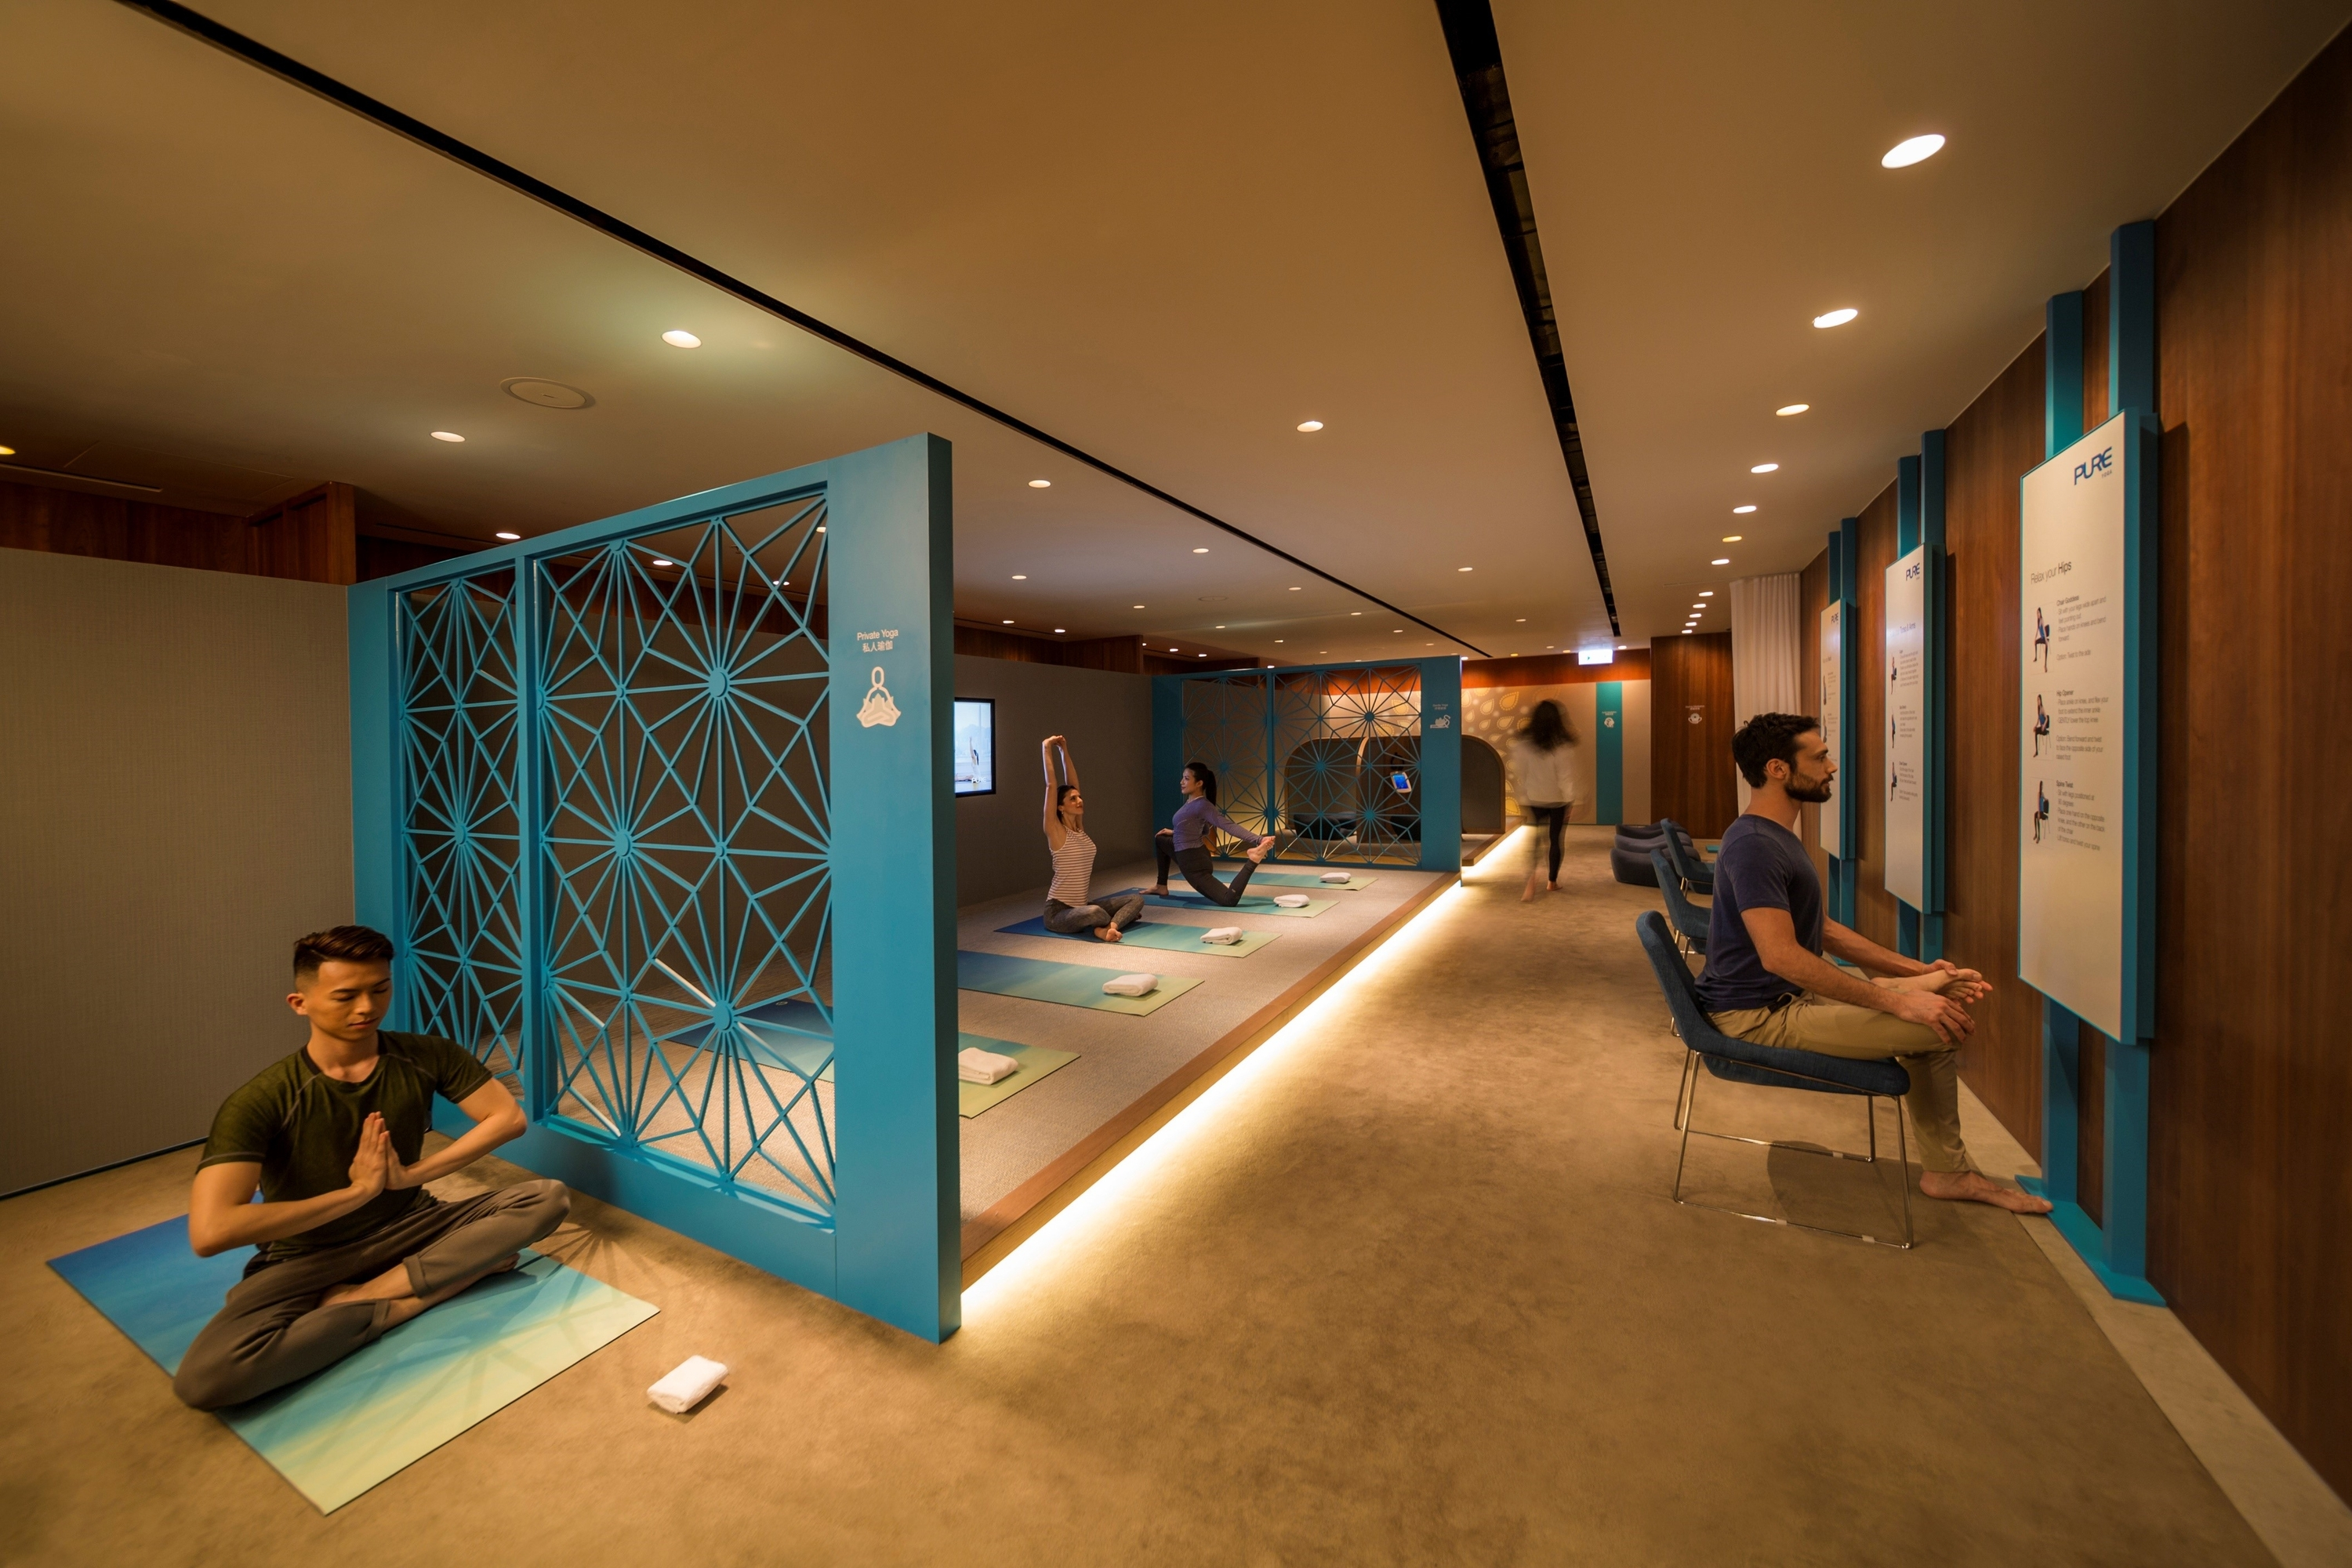 瑜逸閣 the sanctuary by pure yoga @hk airport